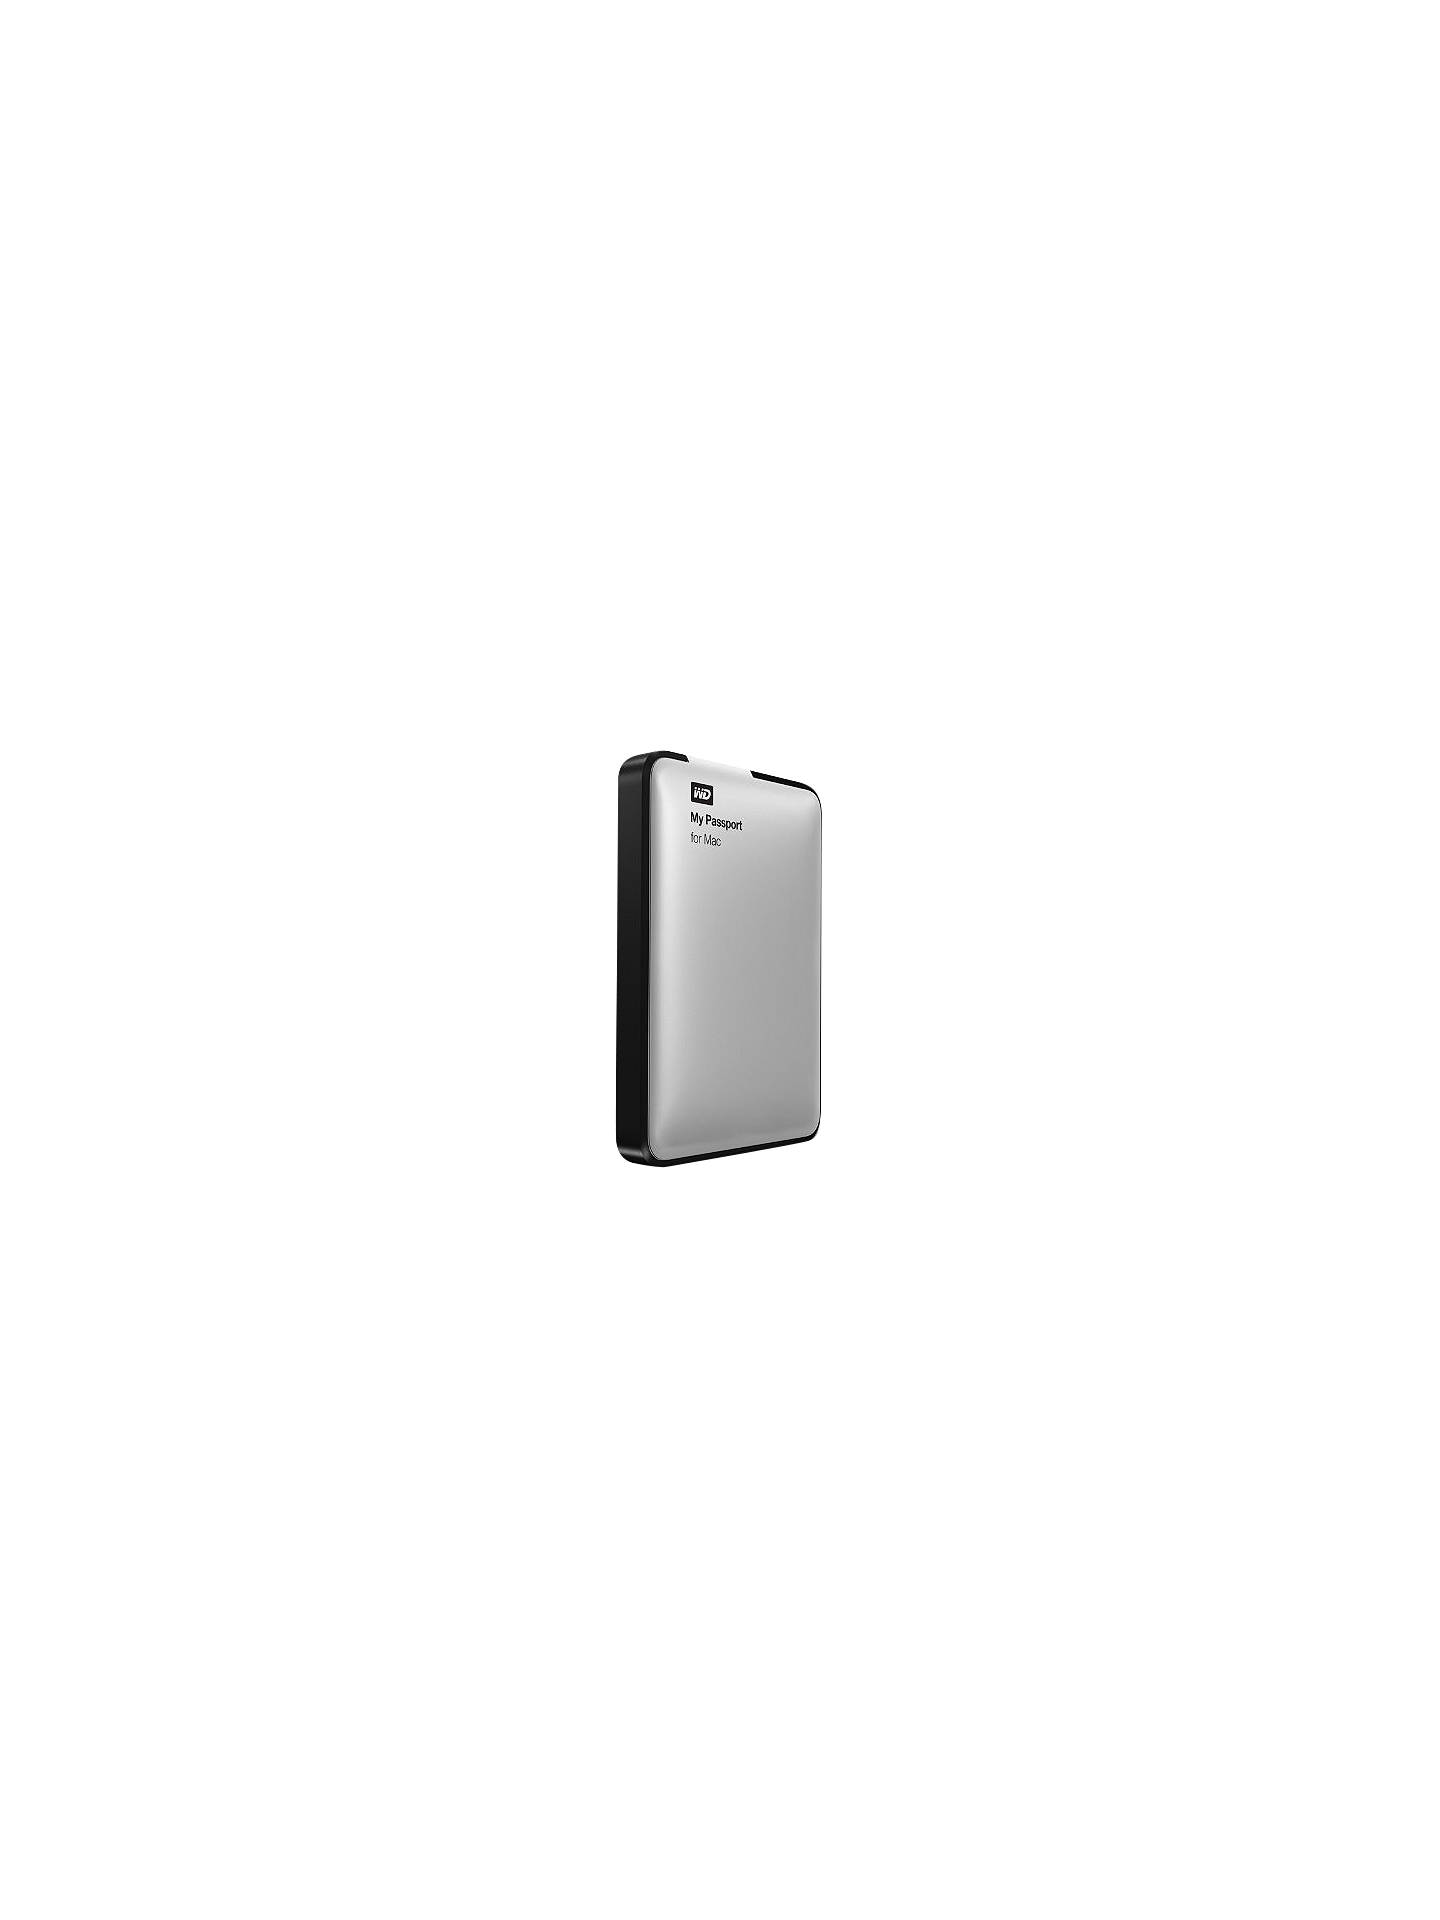 Wd My Passport For Mac Portable Hard Drive Usb 3 0 500gb Silver